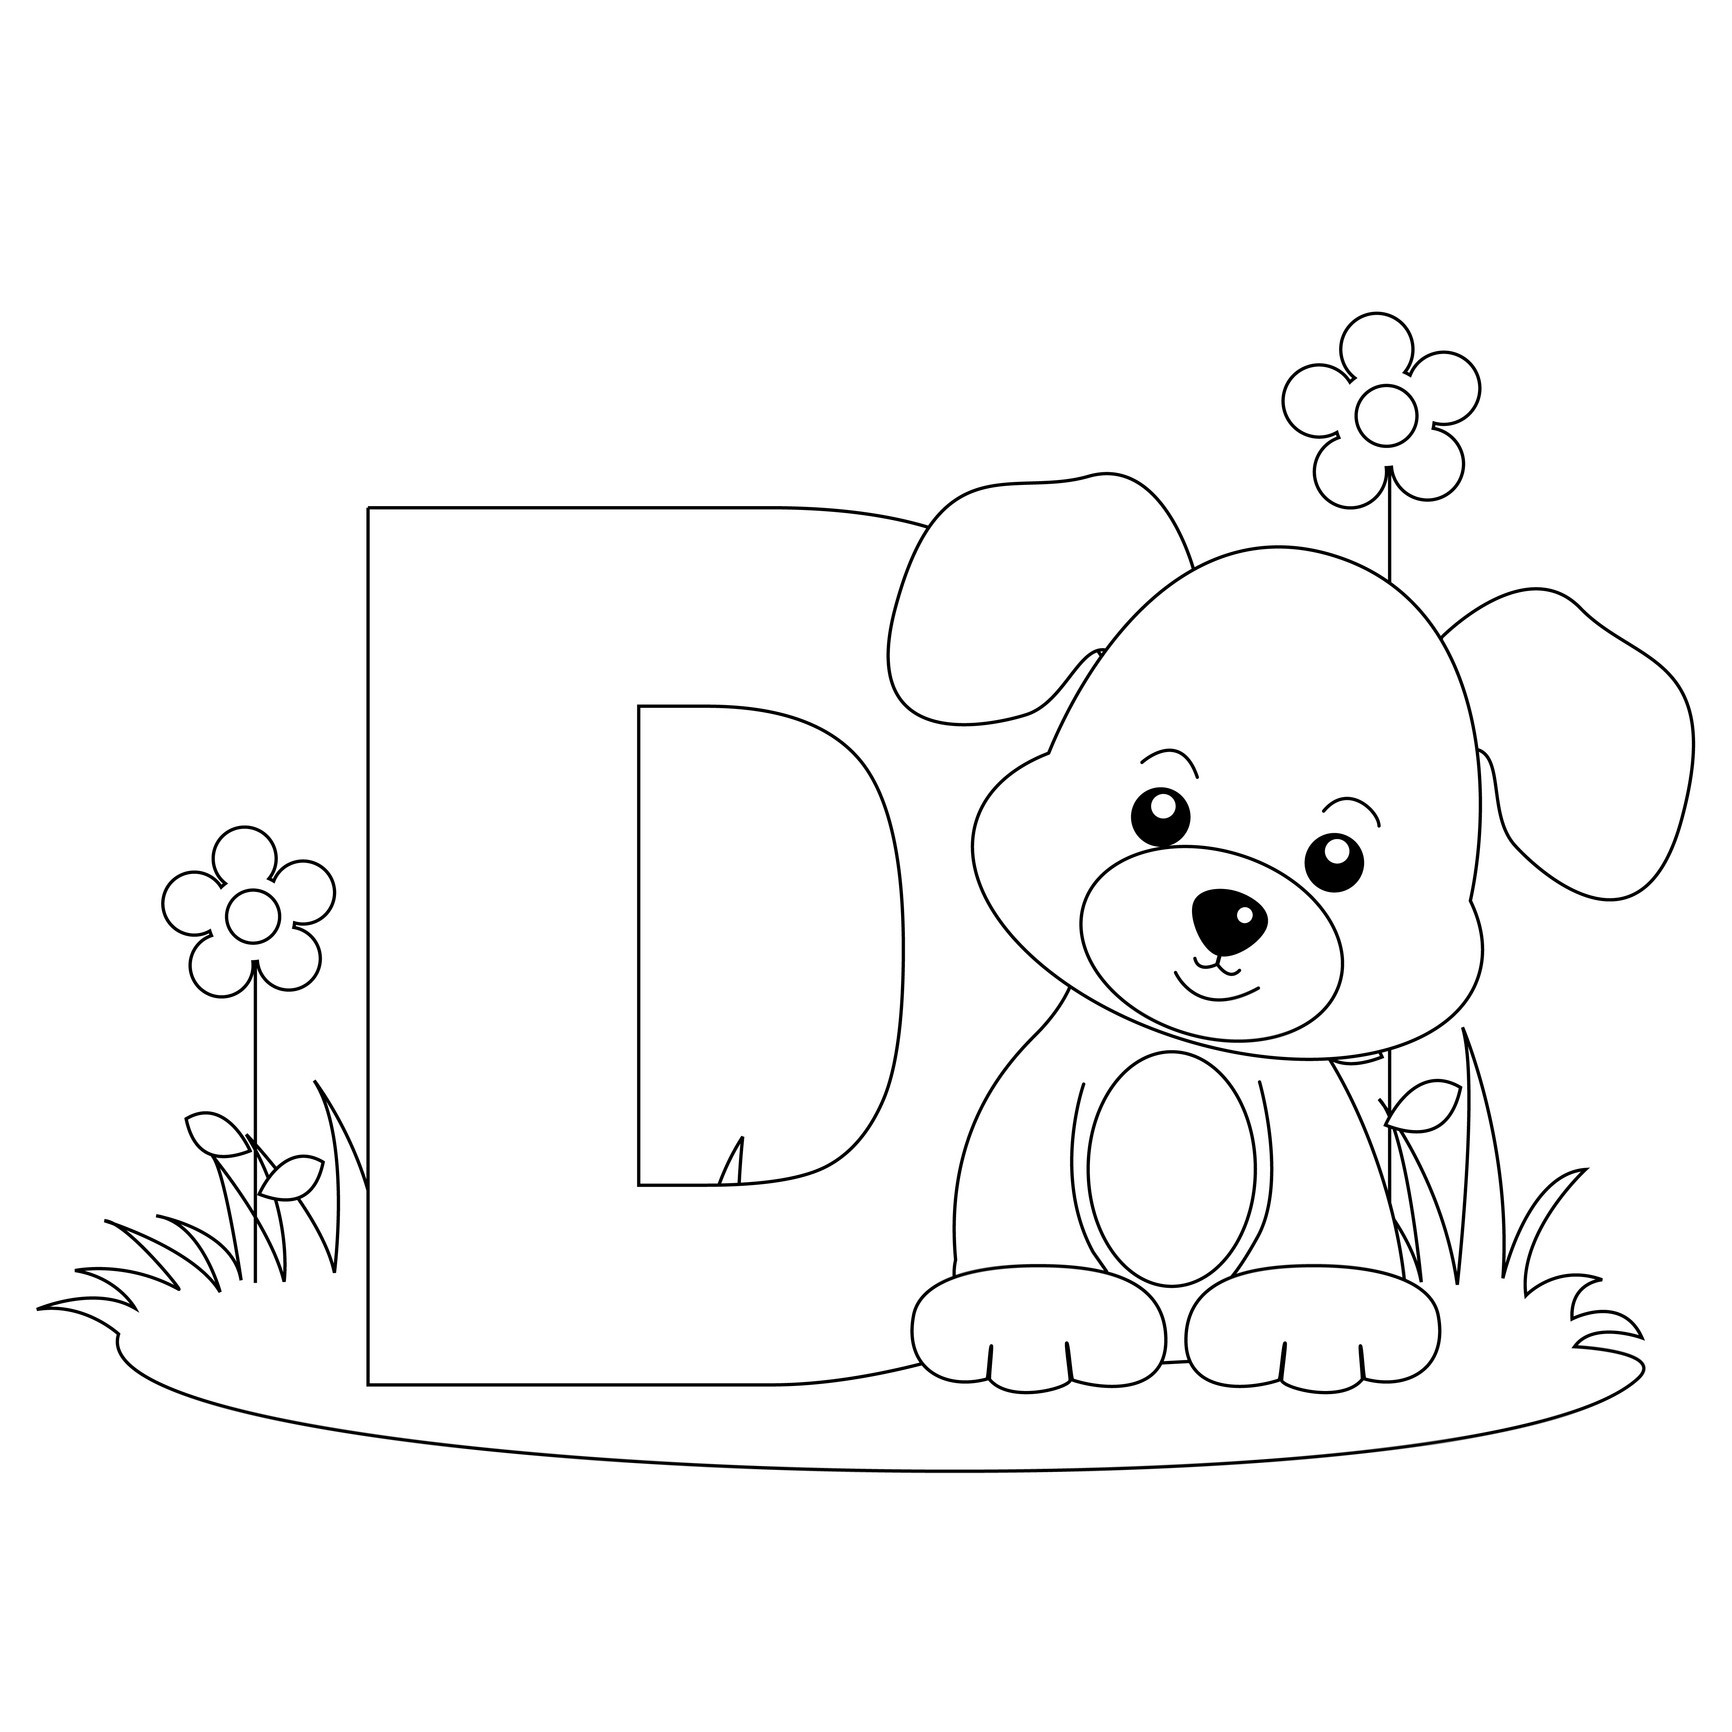 alfabet coloring pages - photo#6